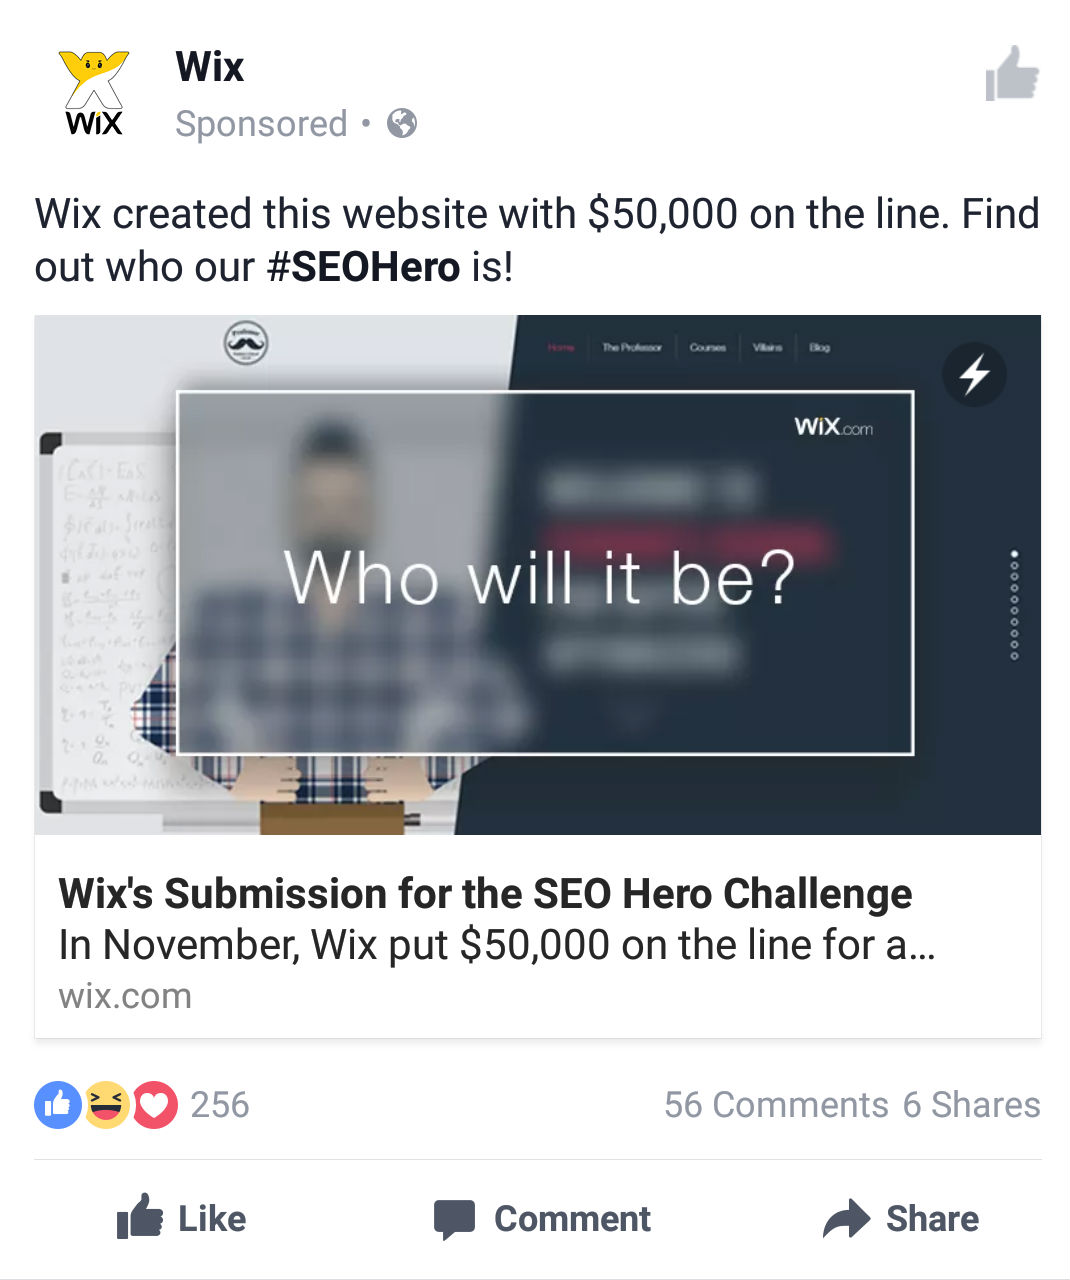 SEO Hero Facebook ads for Wix's entry